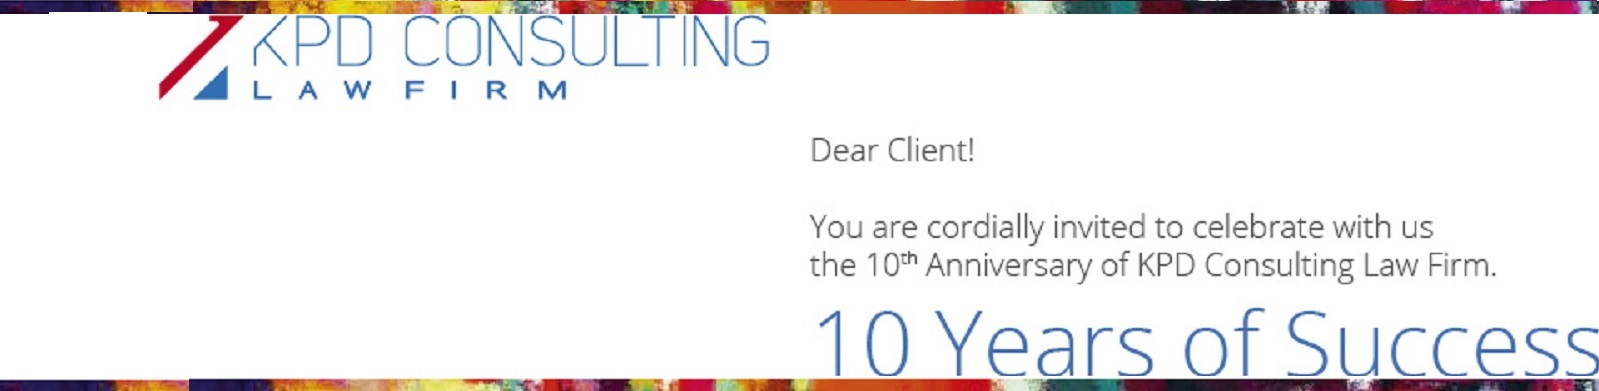 MORE THAN 10 YEARS of EFFICIENT SUPPORT for our CLIENTS